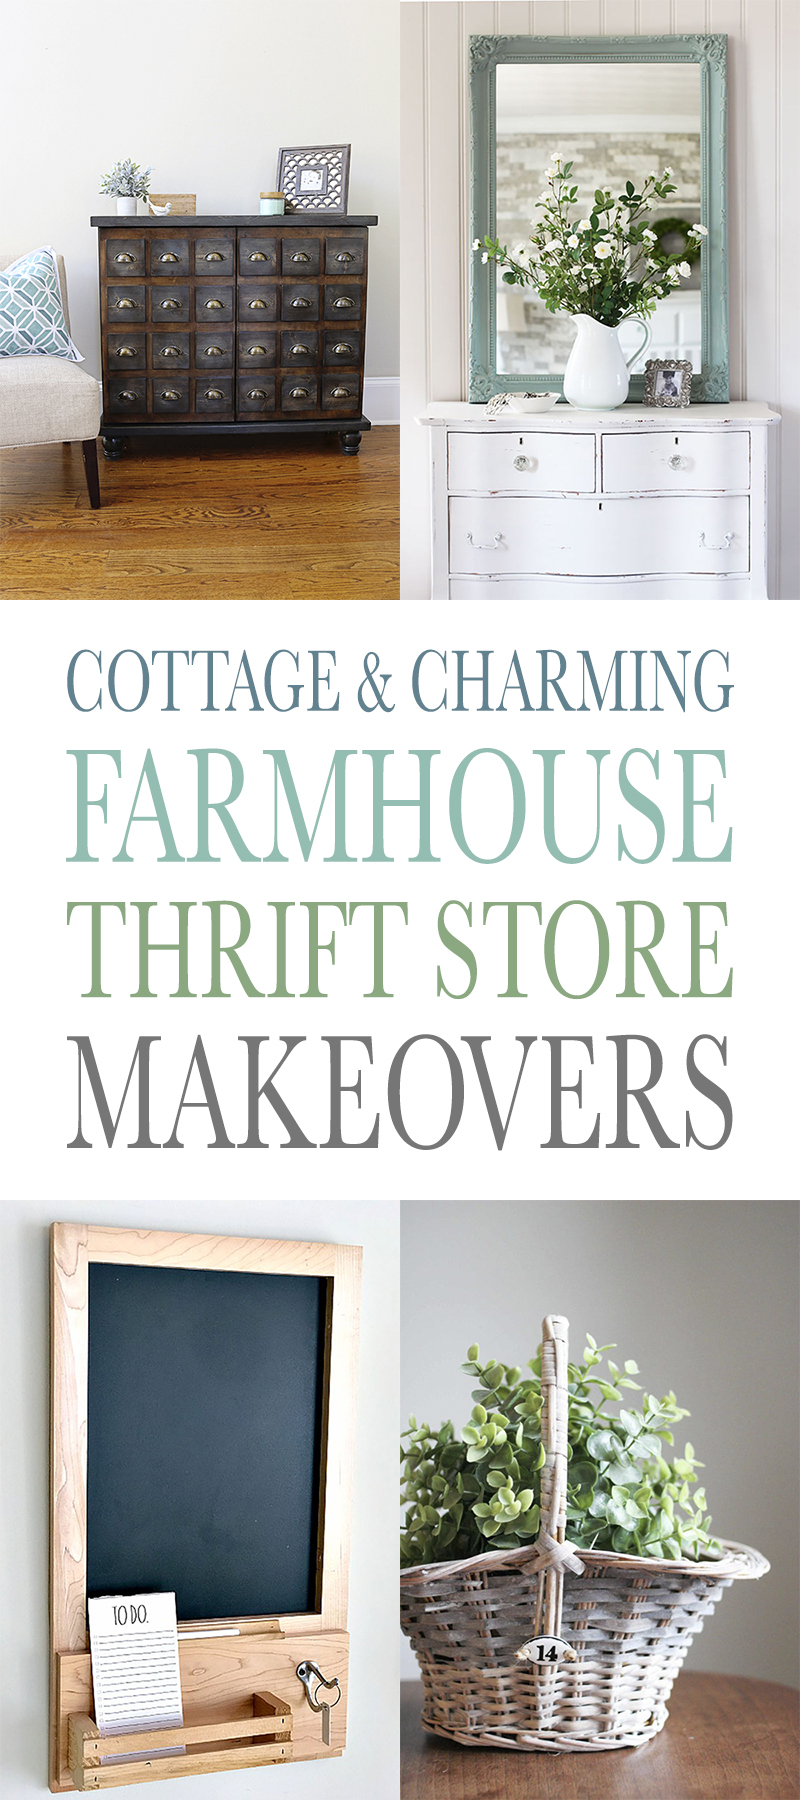 Cottage and Charming Farmhouse Thrift Store Makeovers